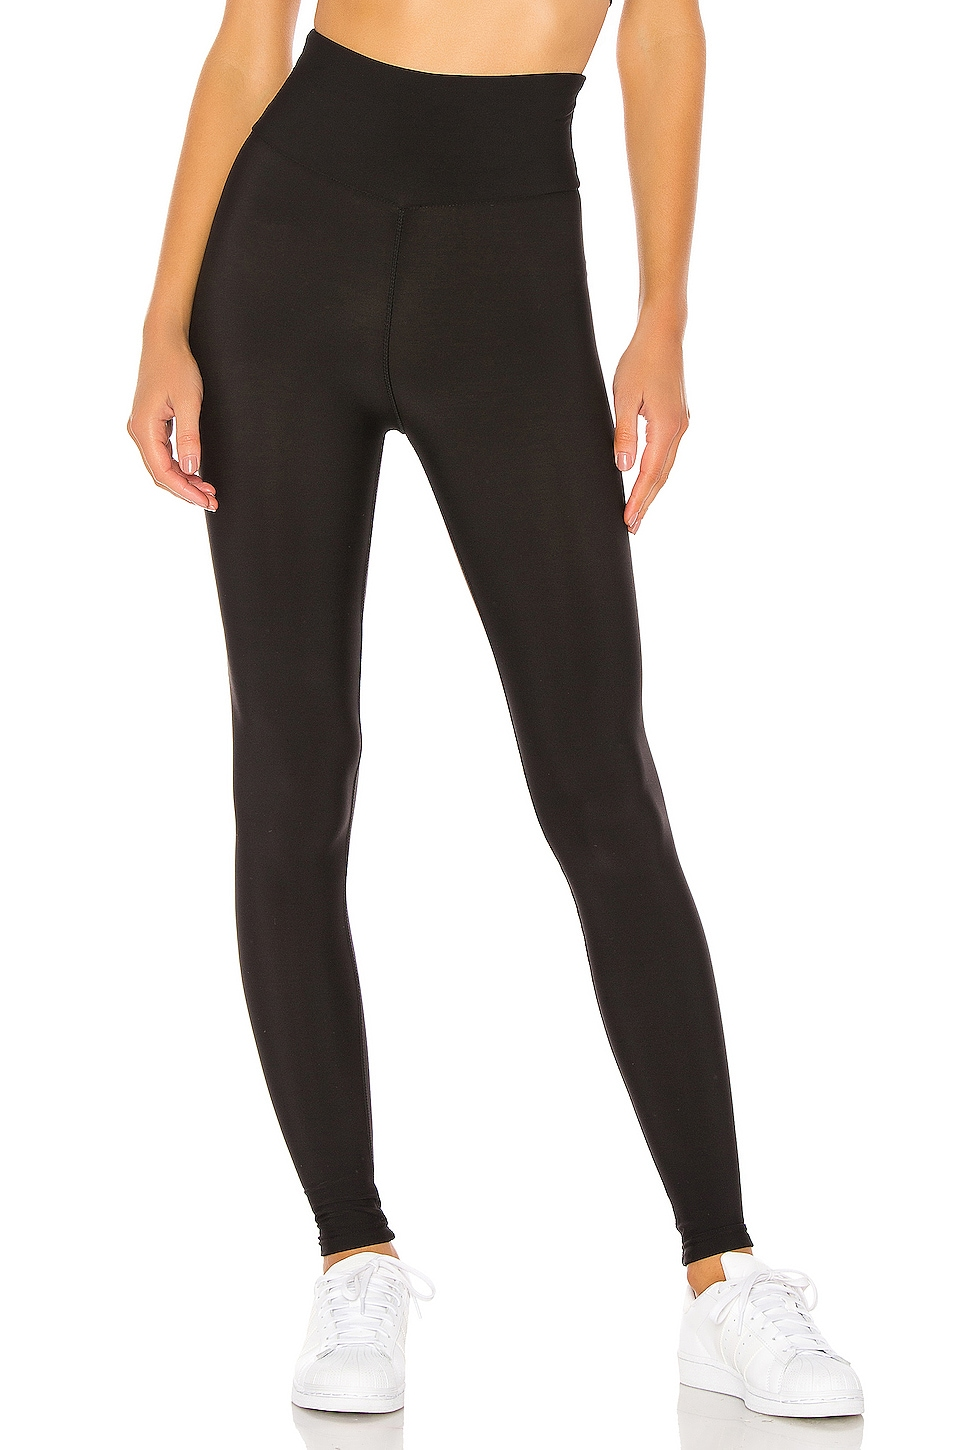 Plush Fleece Lined High Waisted Matte Legging in Black